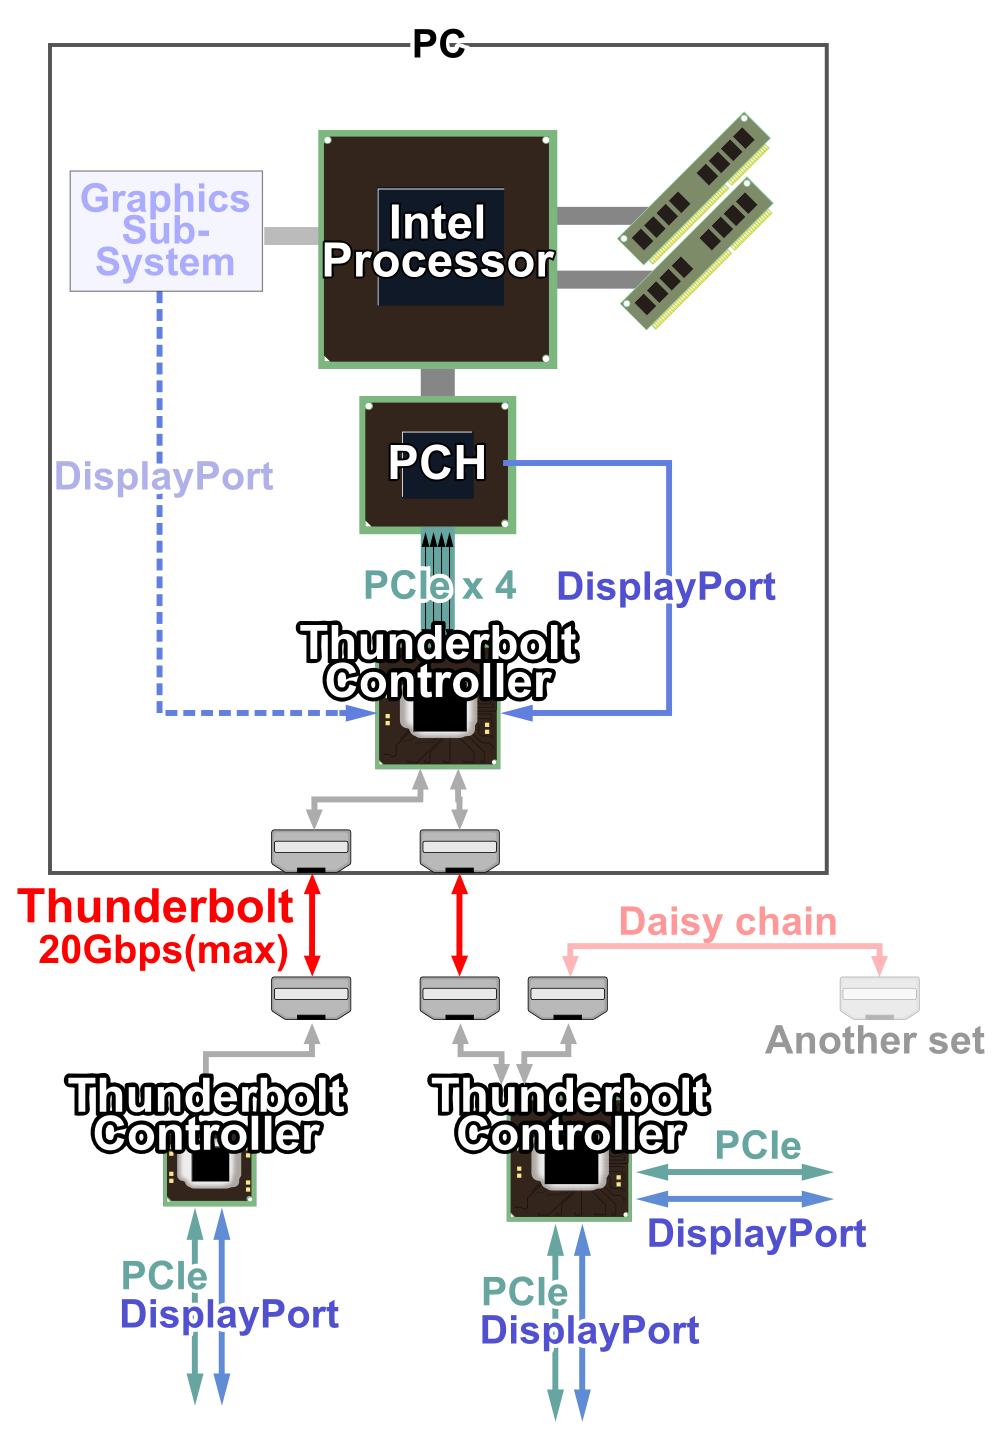 Fibre Channel Storage Gaga Scsi To Rj45 Wiring Diagram But Thunderbolt